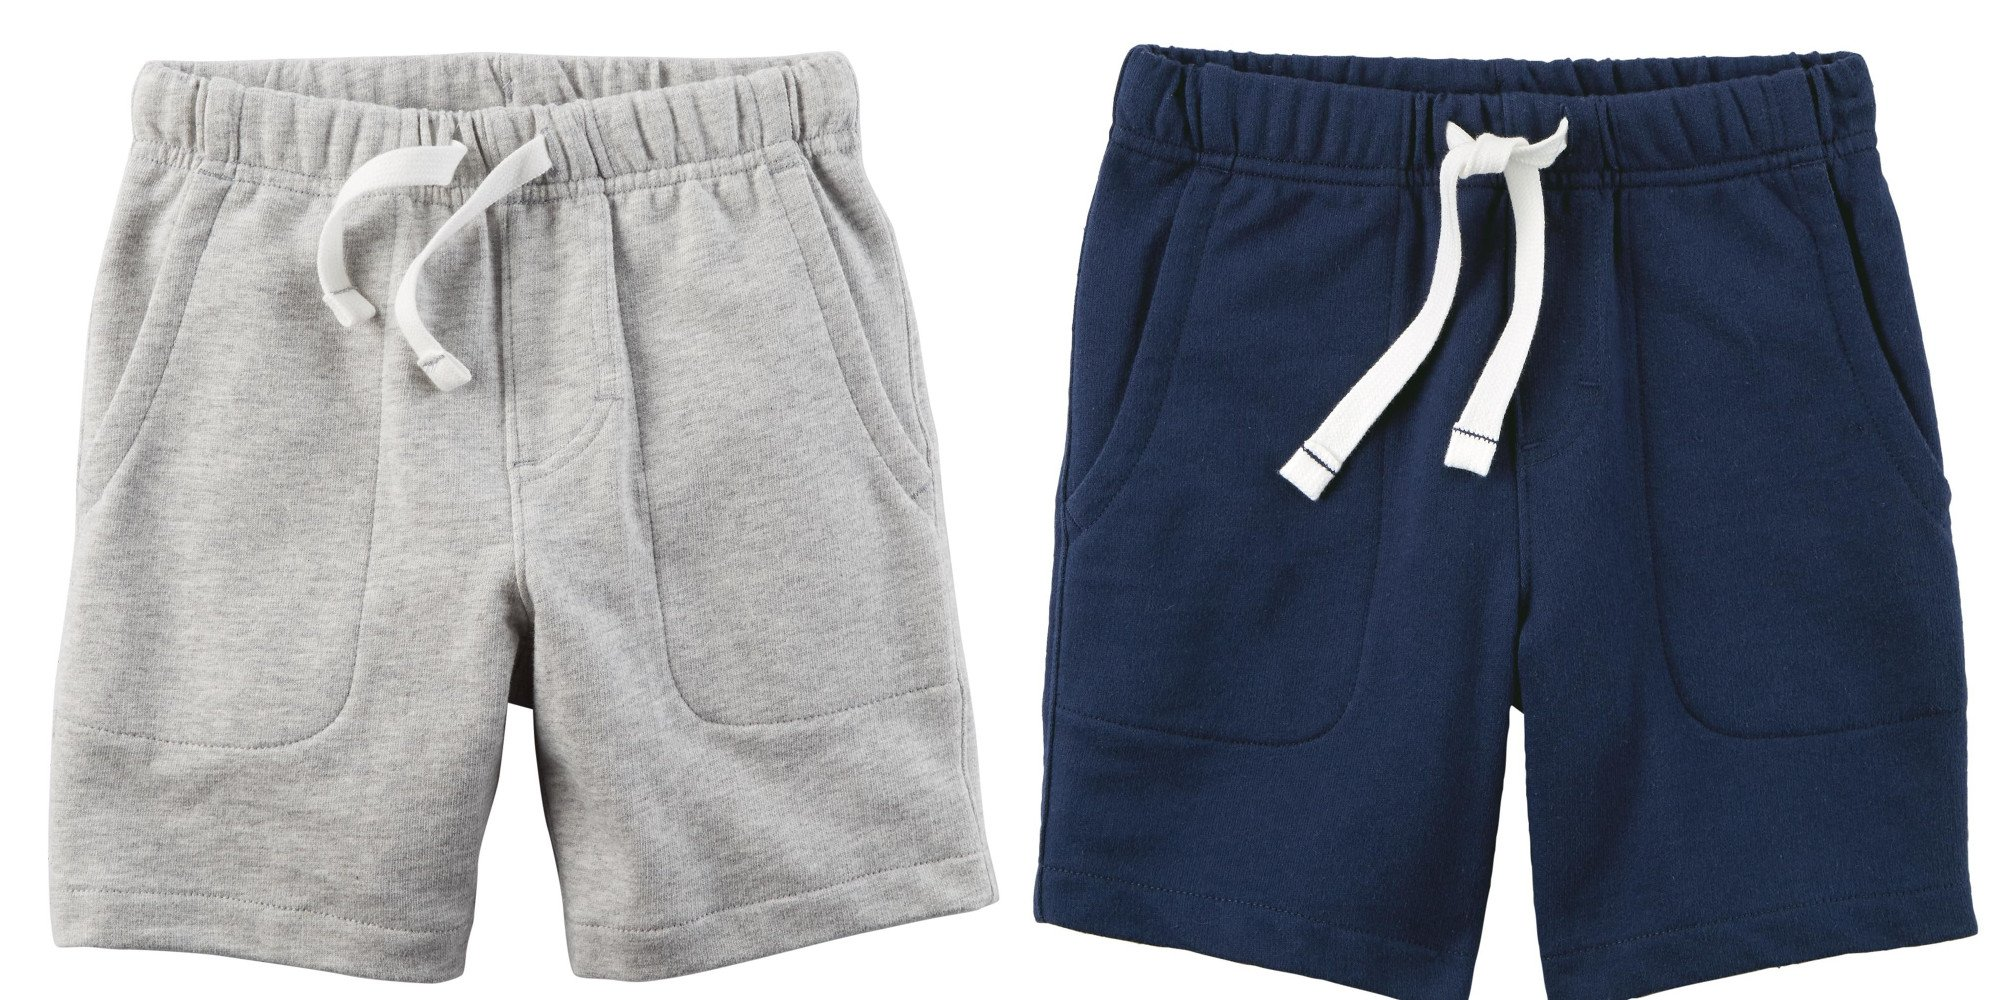 Carter's Set of 2 Boy's Cotton Pull On Shorts Toddler Little and Big Boys (6, Navy Blue and Light Heather Grey)